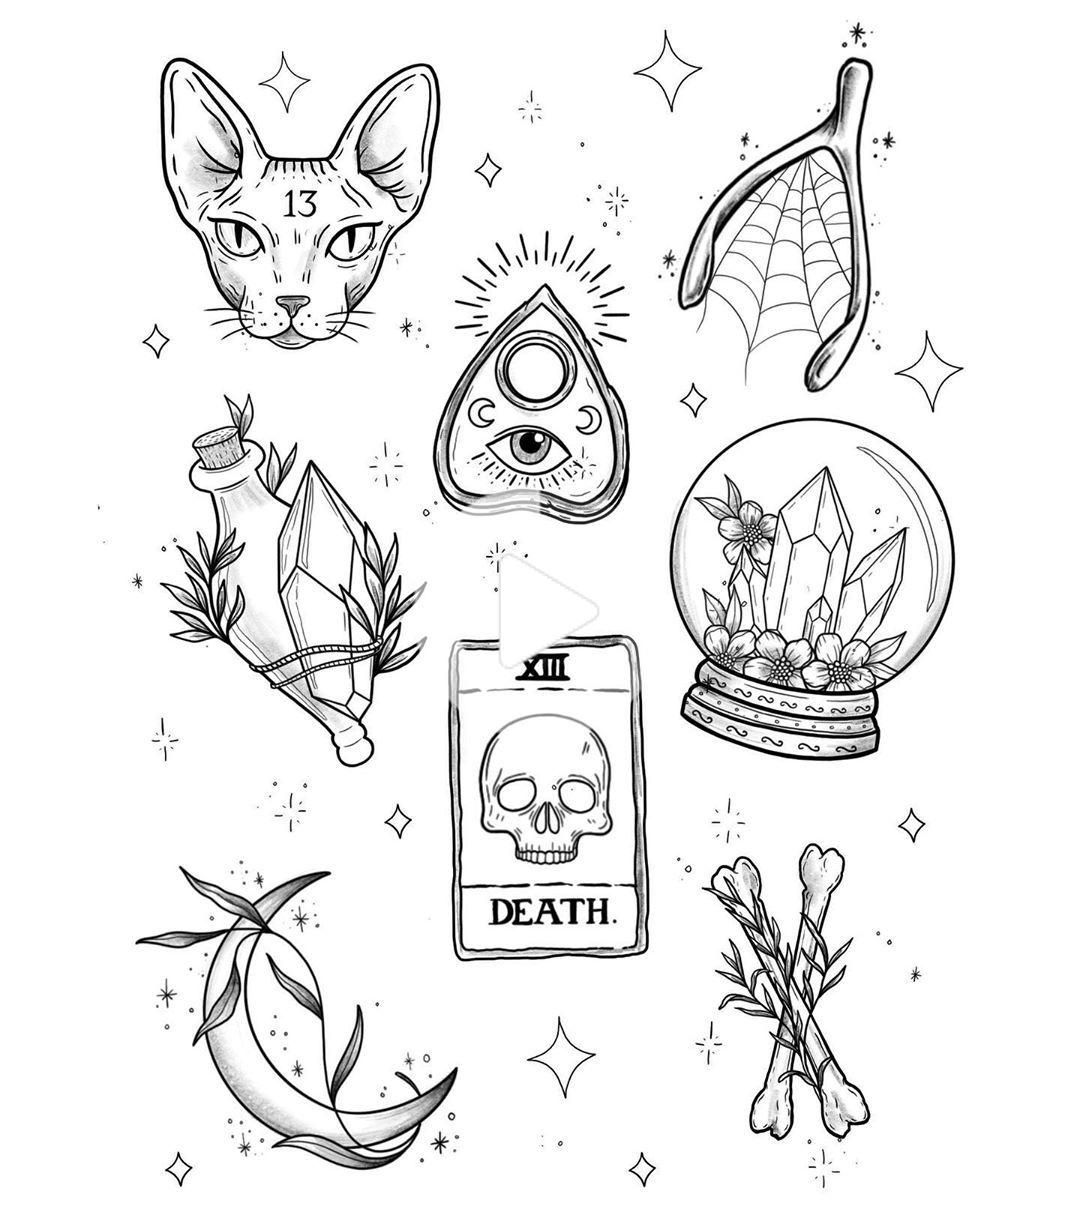 45+ Awesome Friday the 13th tattoos 2020 denver image ideas